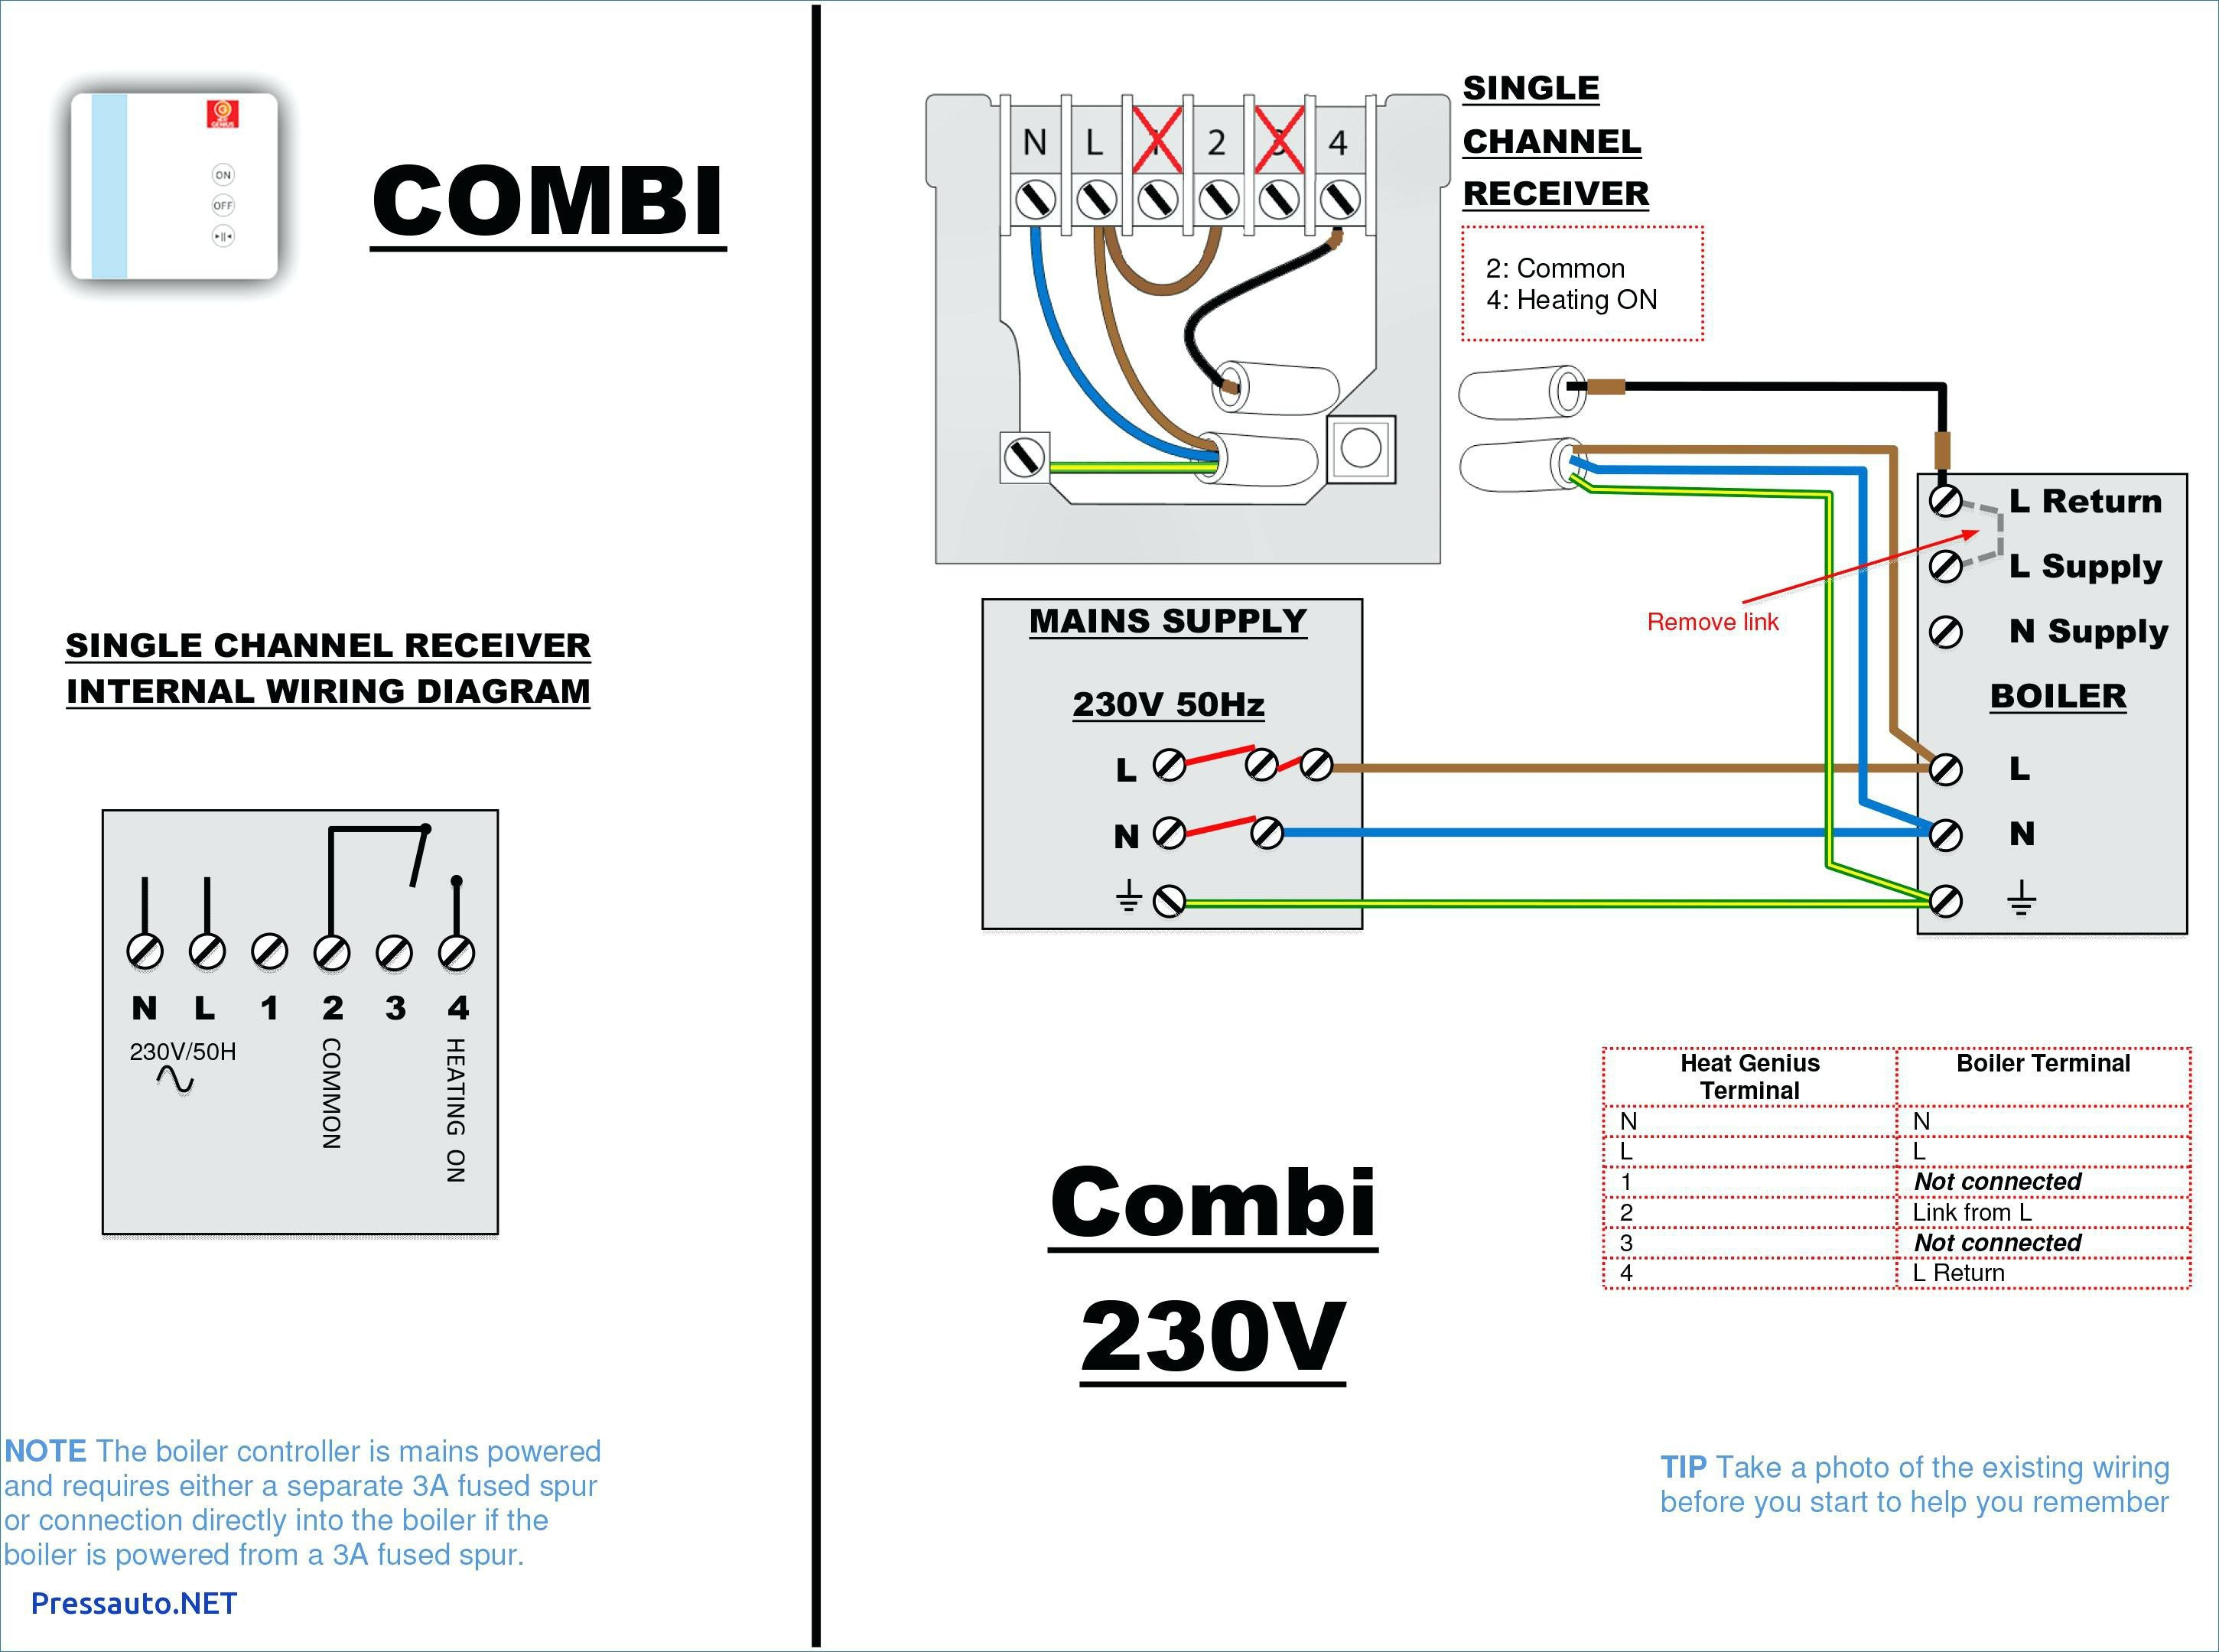 Fahrenheit Electric Baseboard Wiring Diagram Free Ta1aw Heater 110v Library 120 Volt Heaters